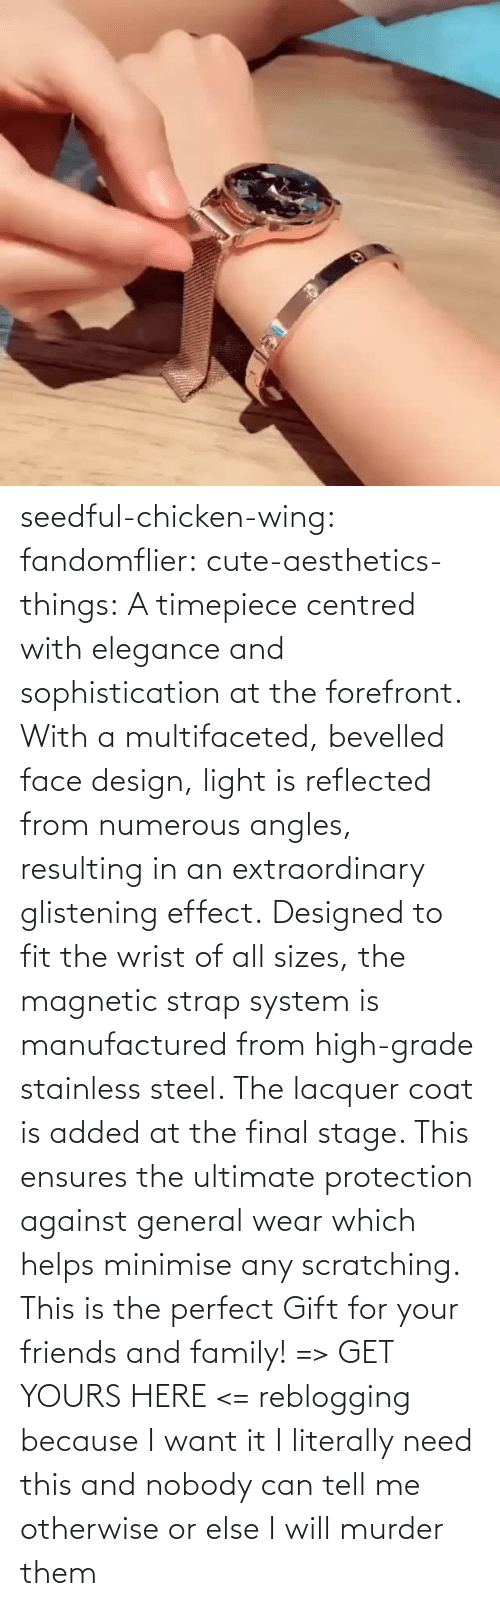 literally: seedful-chicken-wing: fandomflier:  cute-aesthetics-things:   A timepiece centred with elegance and sophistication at the forefront. With a multifaceted, bevelled face design, light is reflected from numerous angles, resulting in an extraordinary glistening effect. Designed to fit the wrist of all sizes, the magnetic strap system is manufactured from high-grade stainless steel. The lacquer coat is added at the final stage. This ensures the ultimate protection against general wear which helps minimise any scratching. This is the perfect Gift for your friends and family! => GET YOURS HERE <=   reblogging because I want it  I literally need this and nobody can tell me otherwise or else I will murder them